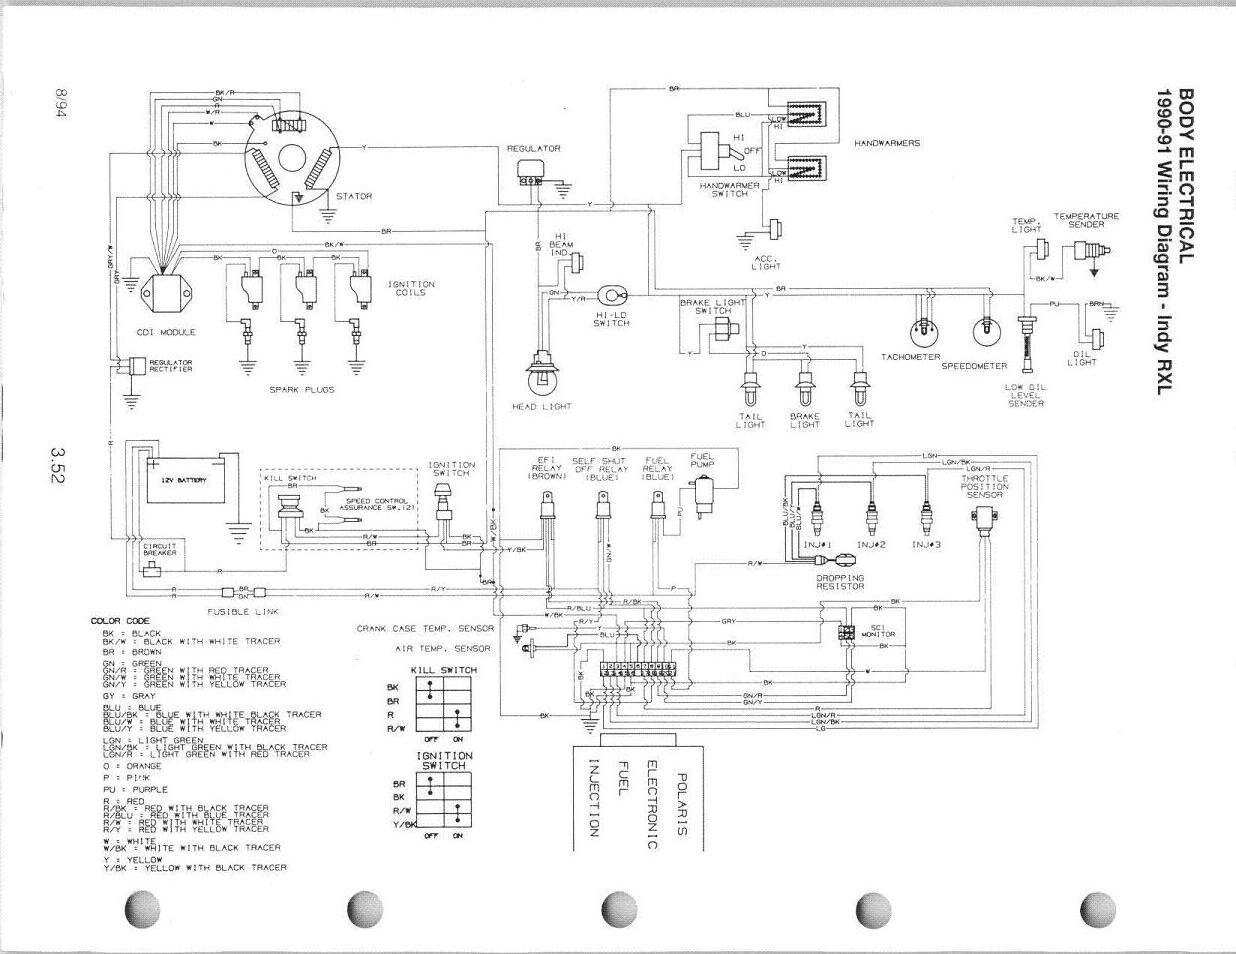 hight resolution of indy polaris sportsman 500 wiring diagram 1991 wiring diagram 1991 polaris trail boss 250 wiring diagram 1991 polaris wiring diagram